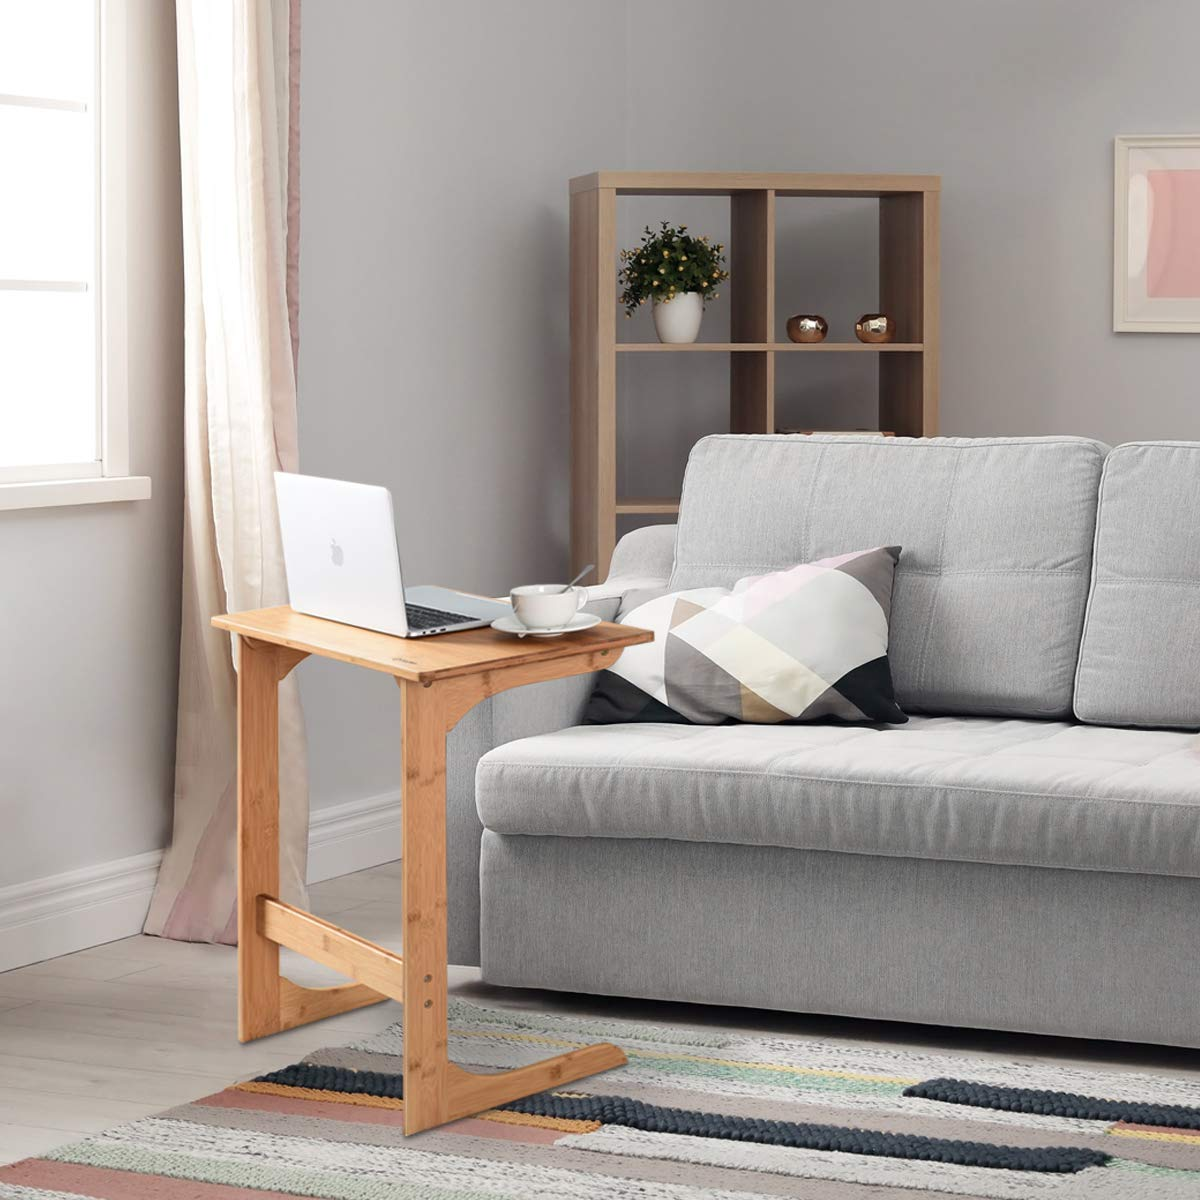 Tangkula Bamboo Sofa Side Table, TV Tray Couch Coffee Snack End Table Bed Side Table, Laptop Desk Modern Furniture for Home Office